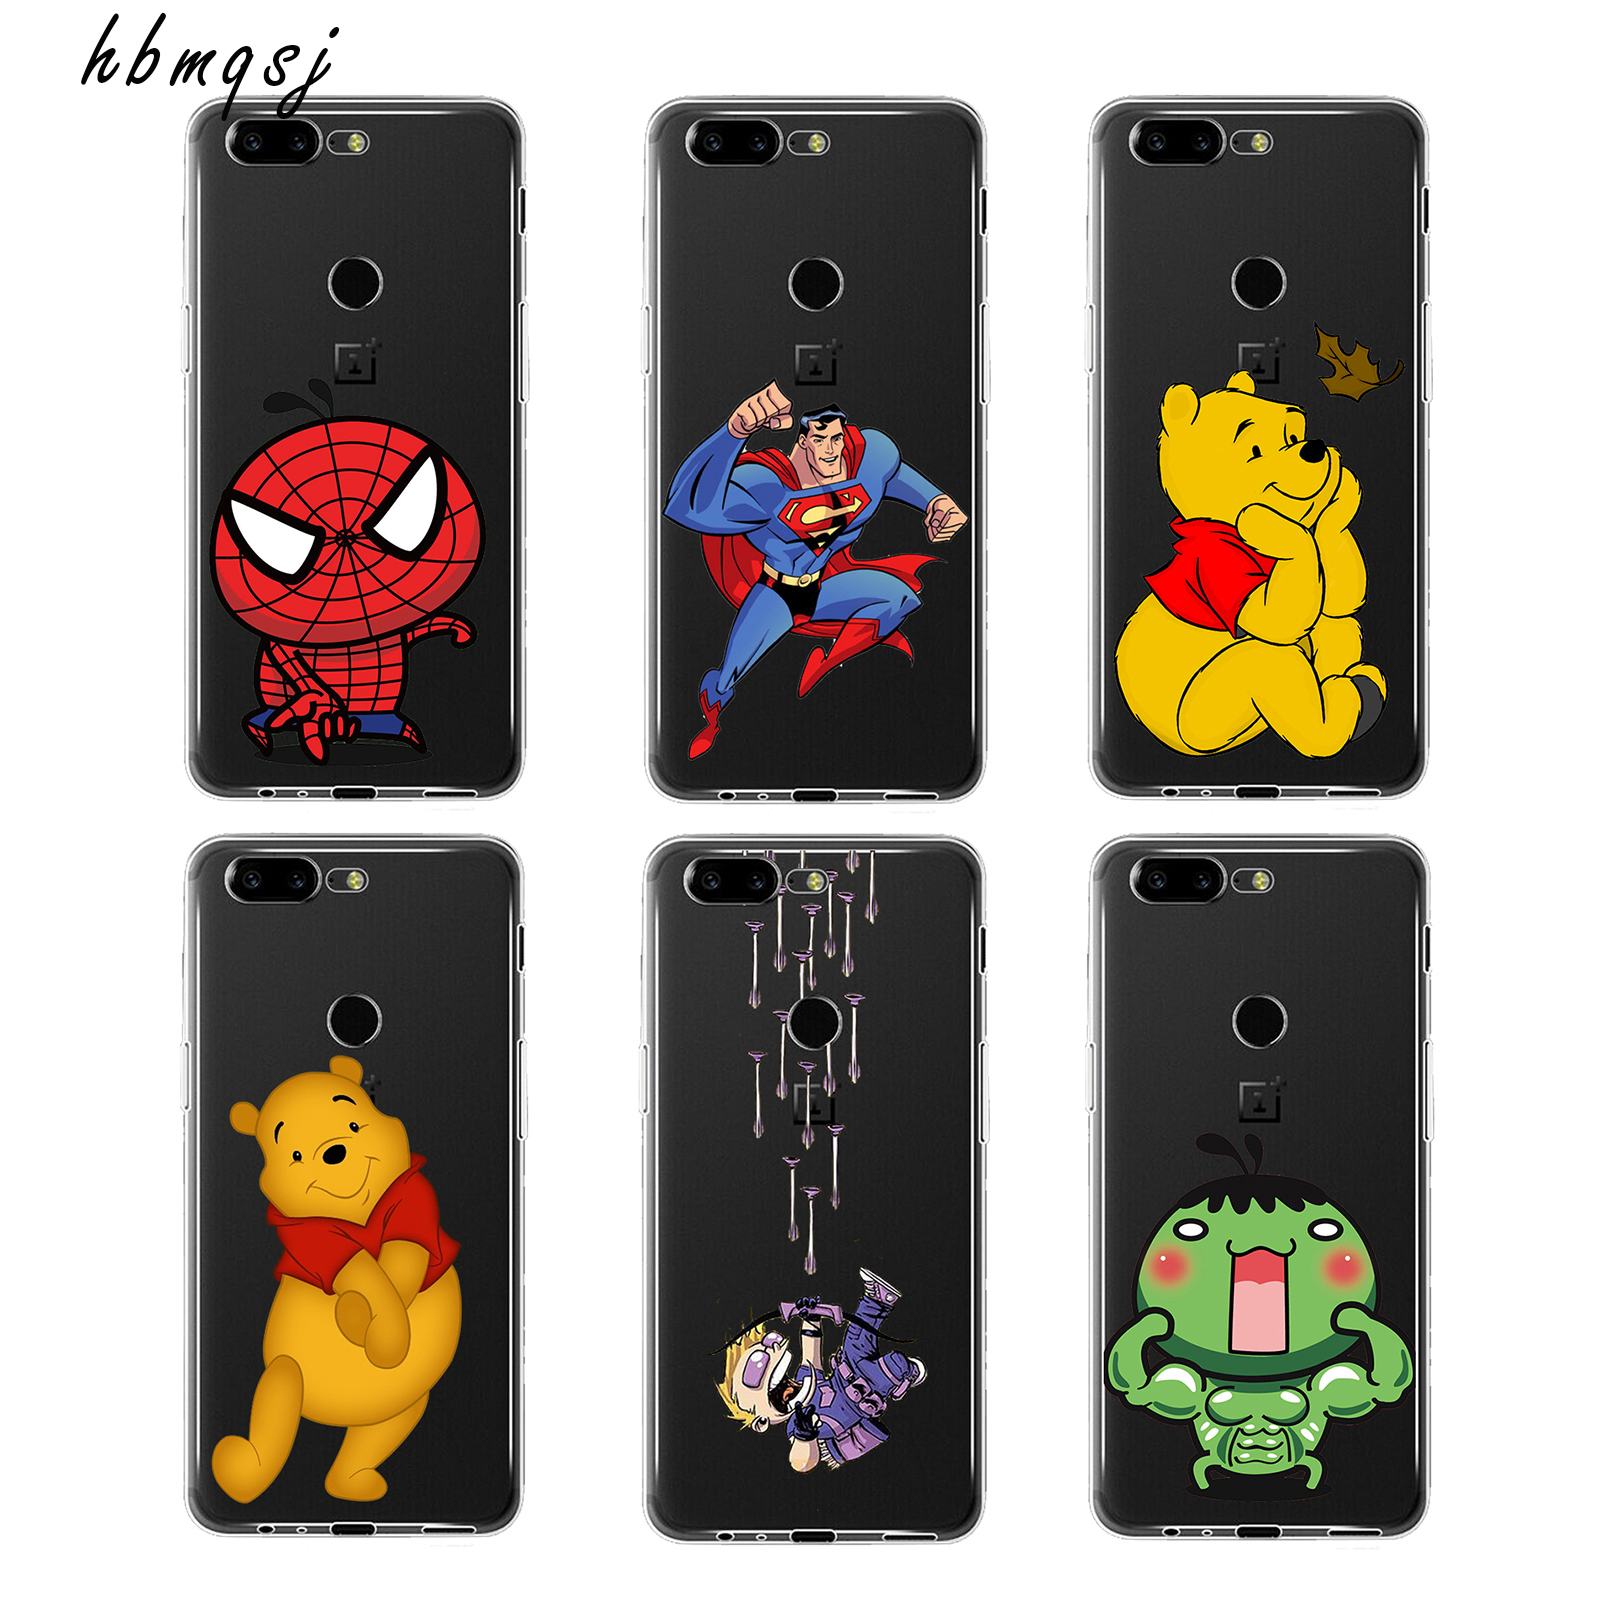 Fashion for oneplus 5t 5 t case silicone tpu soft cover cartoon bear cool spiderman cute cartoon design armor Funny style case